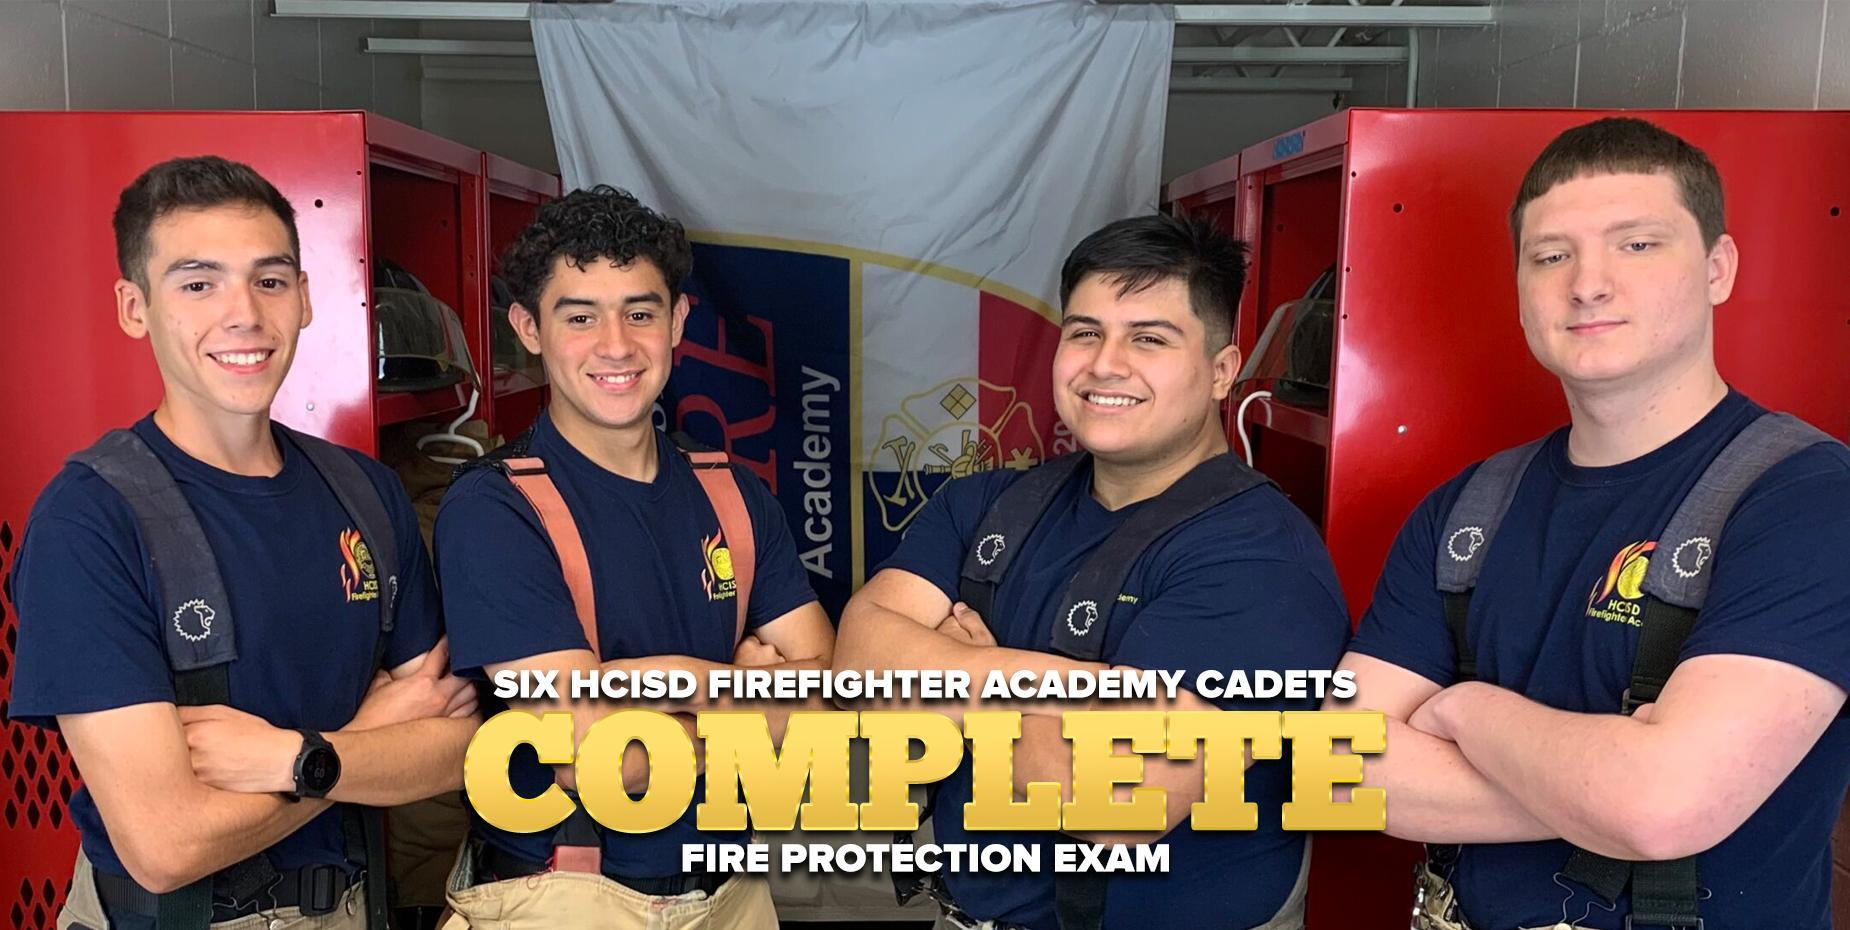 Six HCISD Firefighter Academy cadets complete fire protection exam